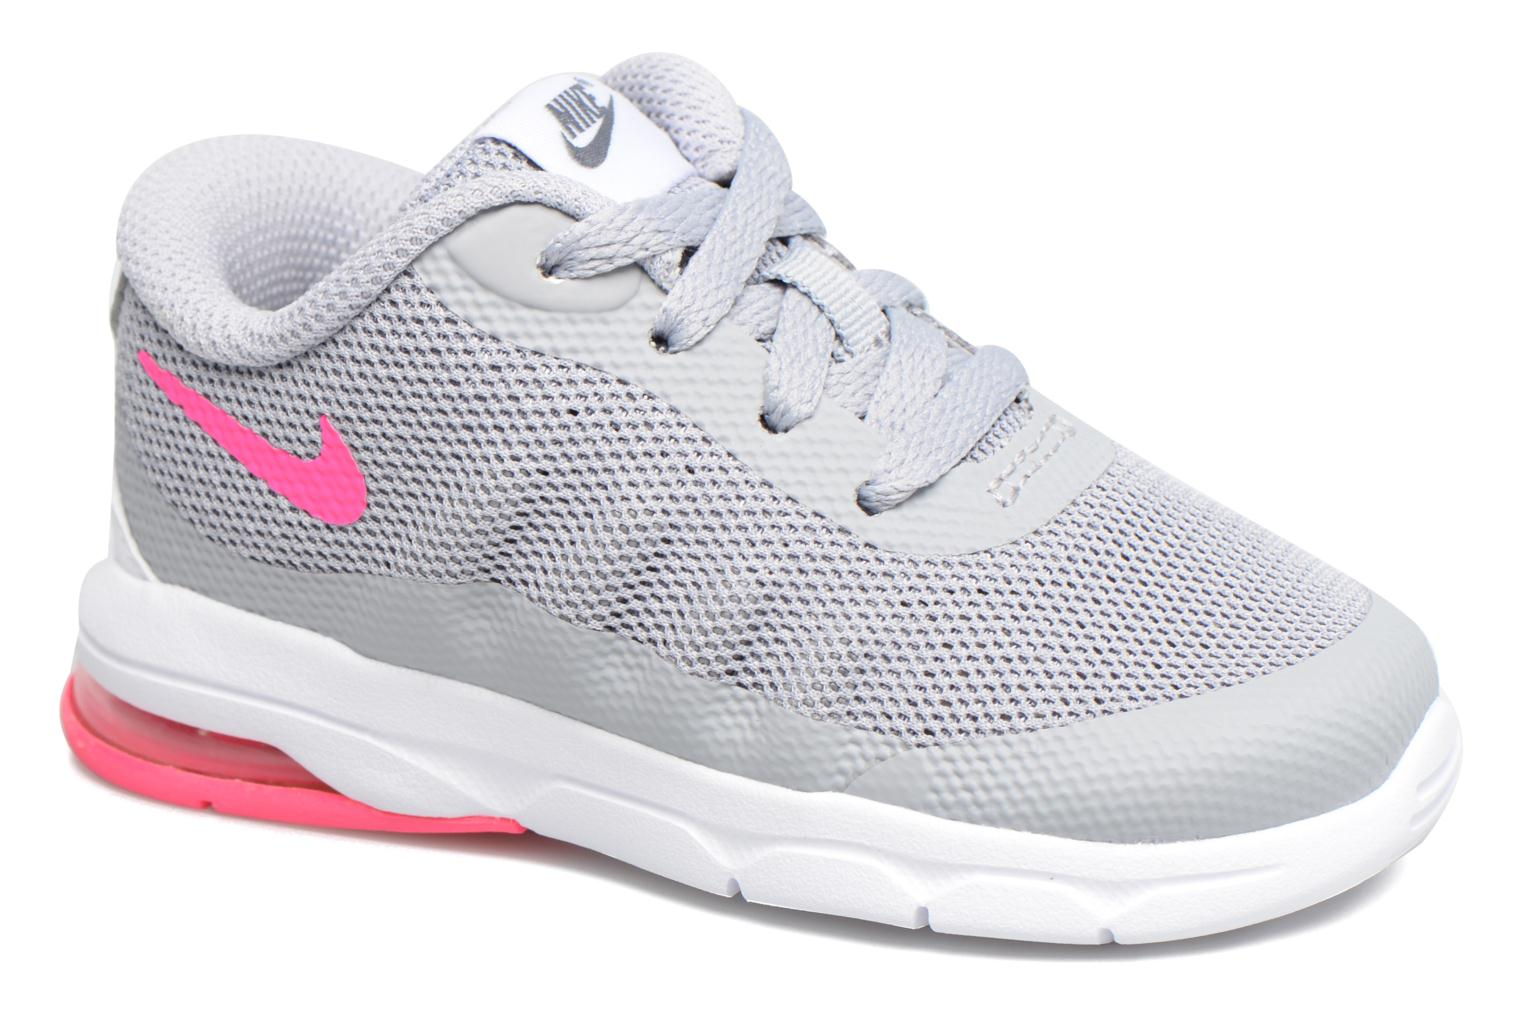 Chaussures Nike Air Max Invigor TD qDlmmT